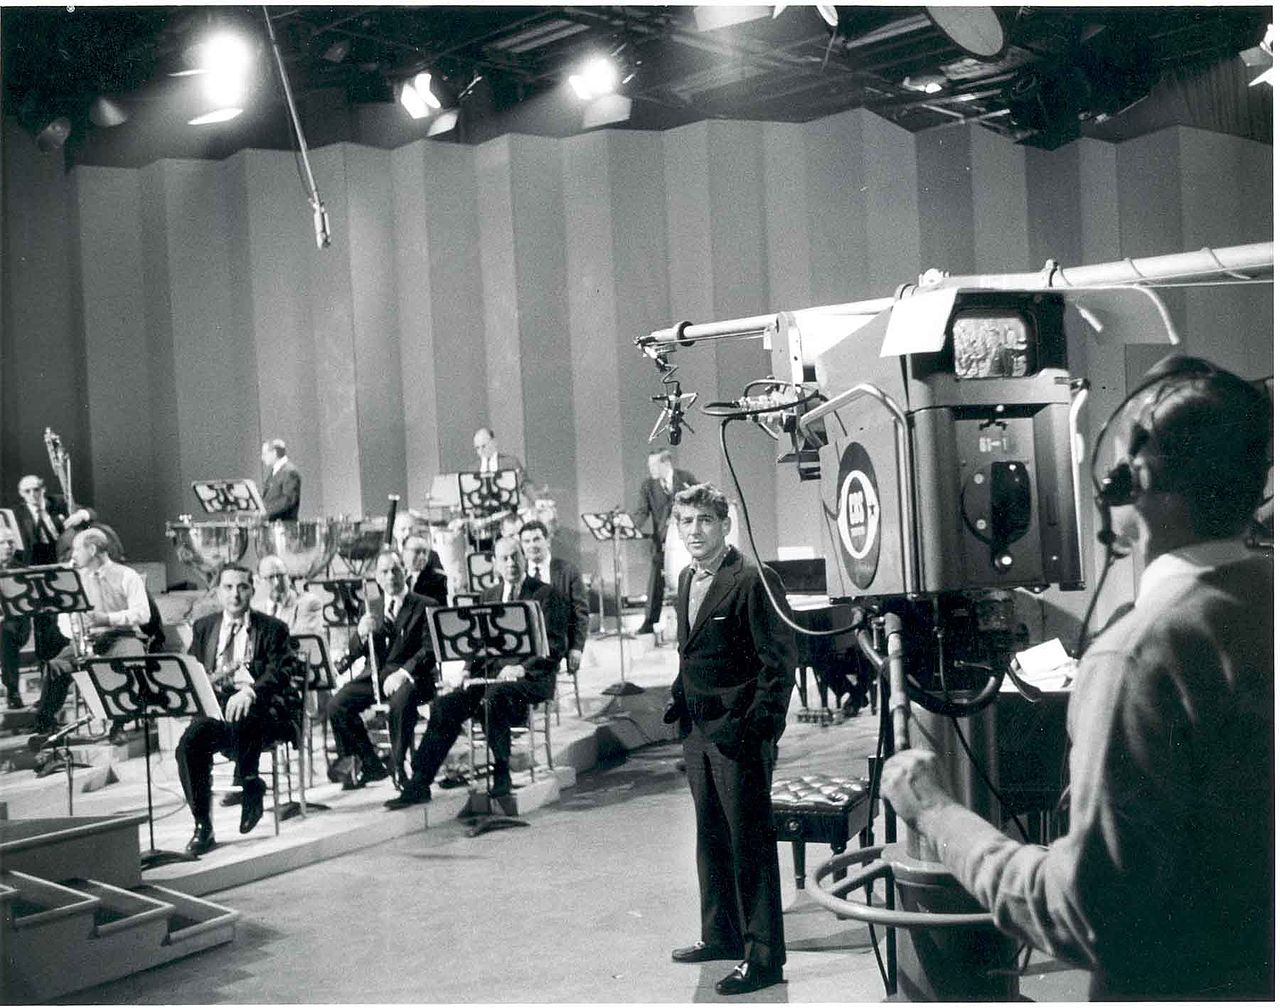 Leonard Bernstein with television camera. Leonard Bernstein with members of the Philharmonic rehearsing for a television broadcast 1958